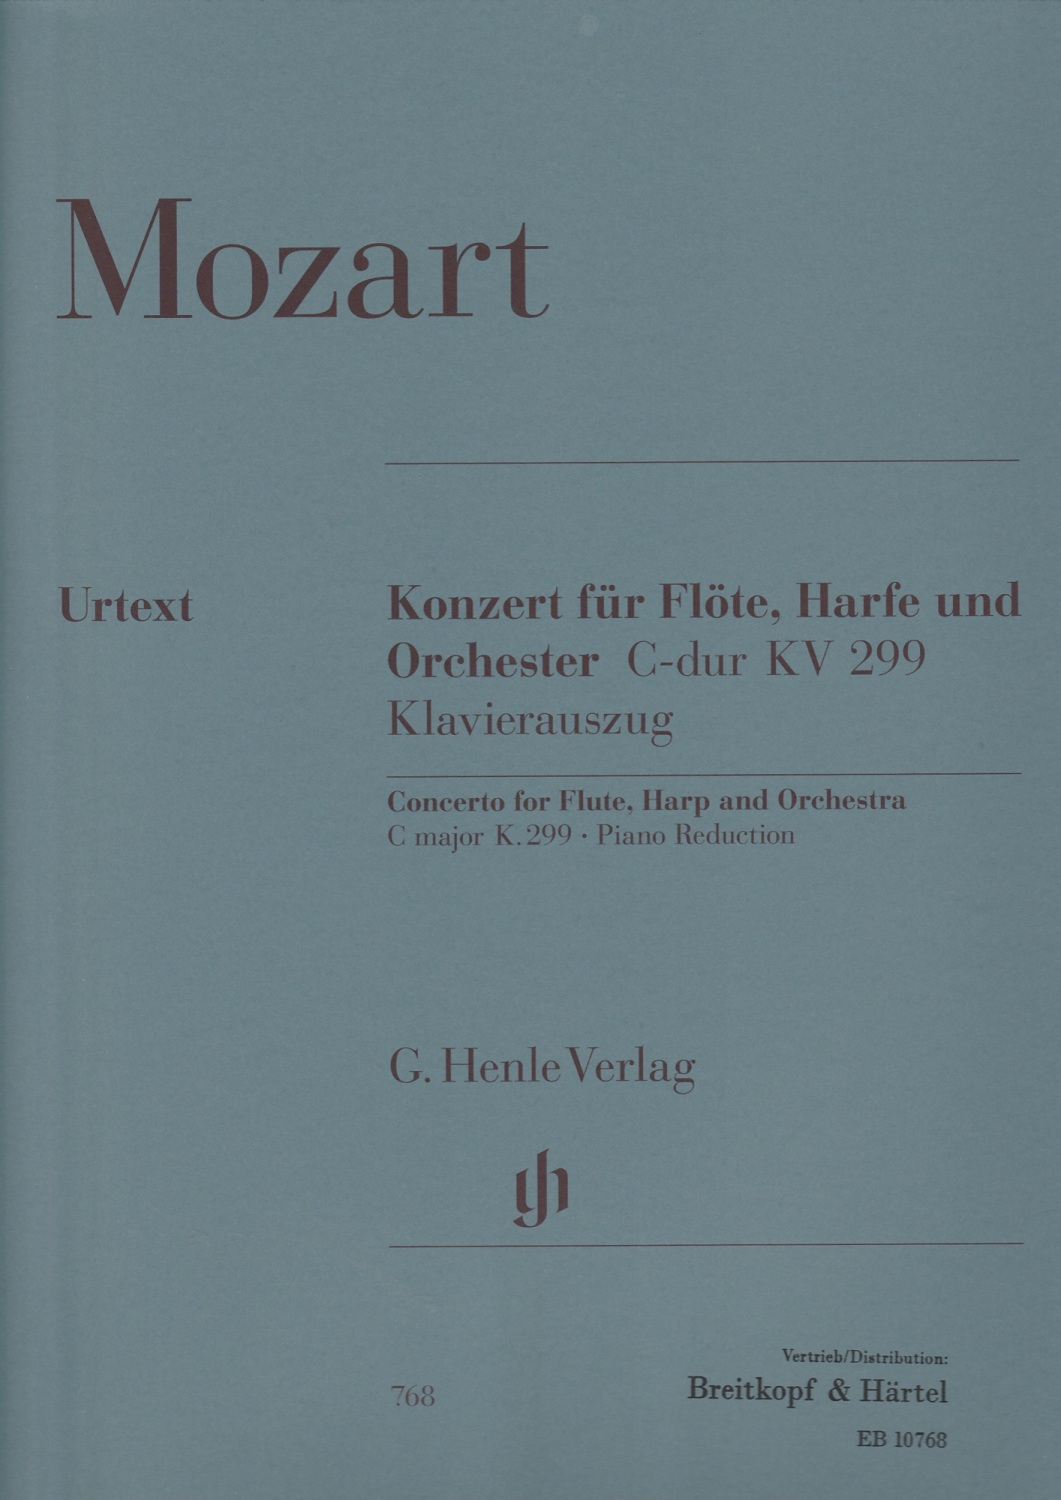 Concerto for Flute, Harp & Orchestra C Major KV299 - Mozart